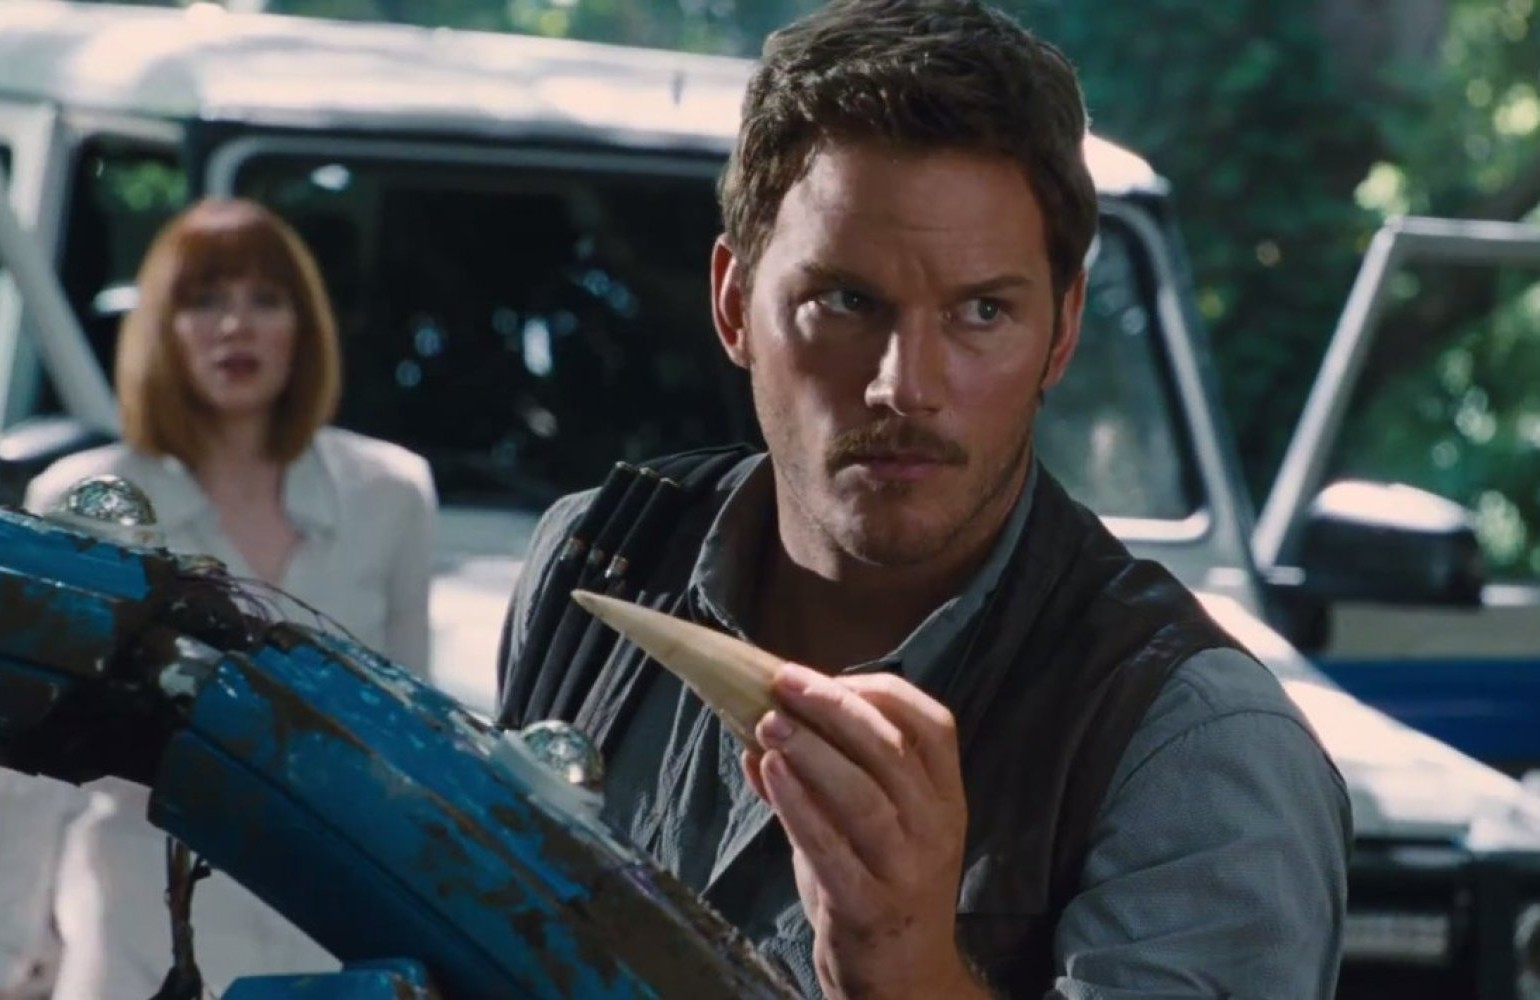 Jurassic World starring Chris Pratt set an all-time opening weekend record. (Photo: Chuck Zlotnick/Universal Pictures)